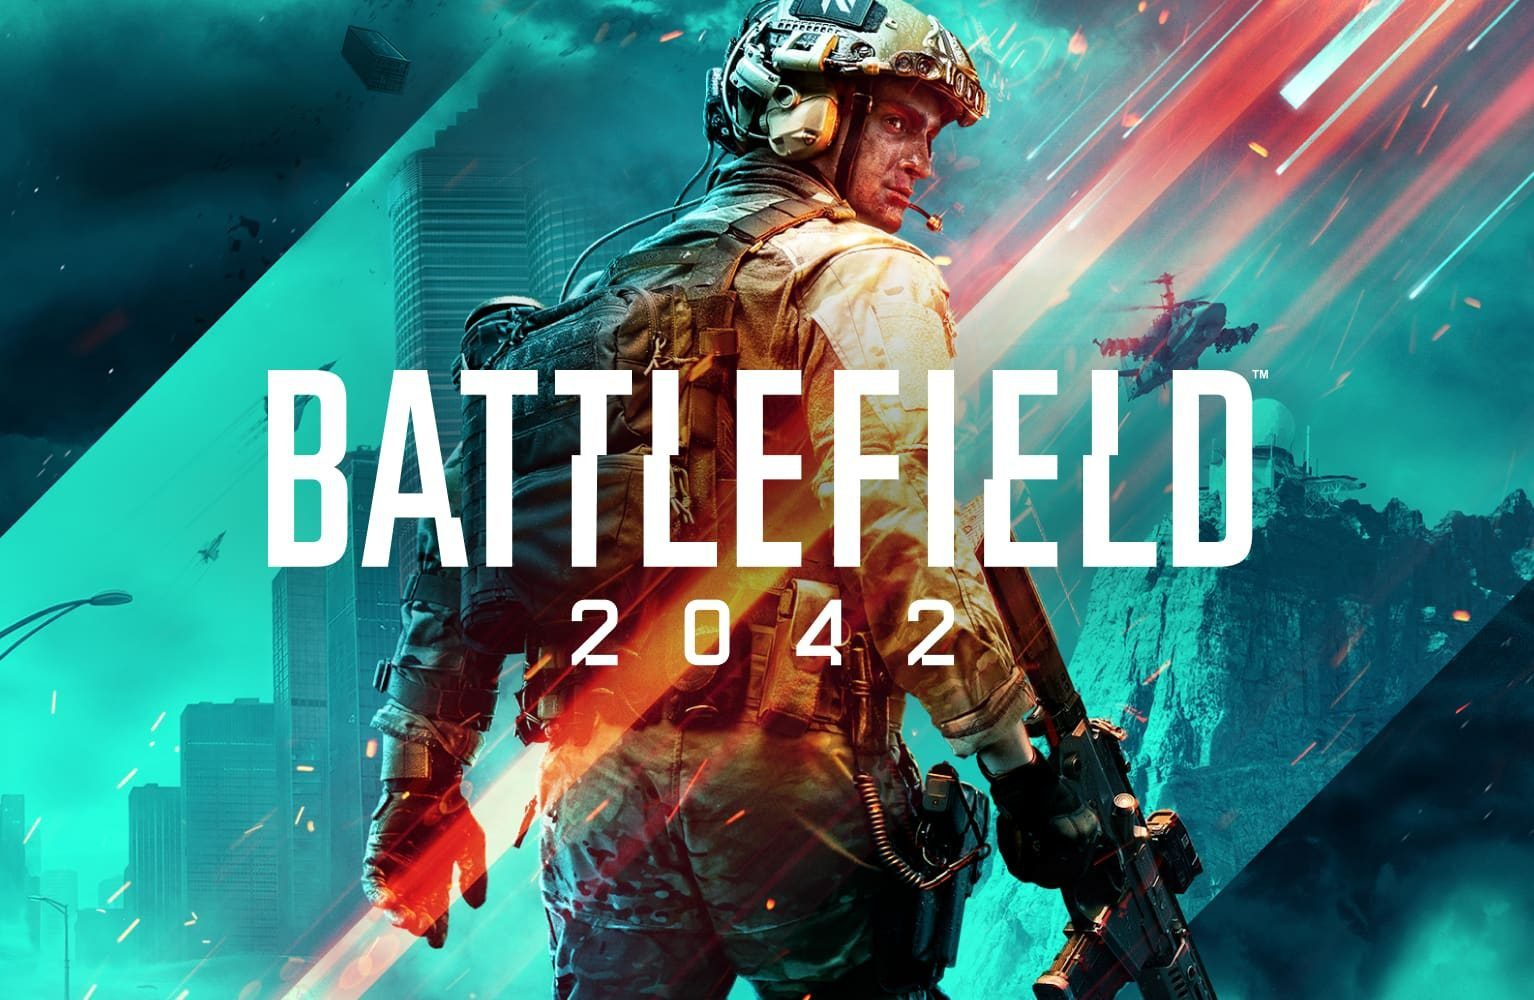 First Gameplay Video of Battlefield 2042 Released Battlefield 2042 System Requirements Announced 2